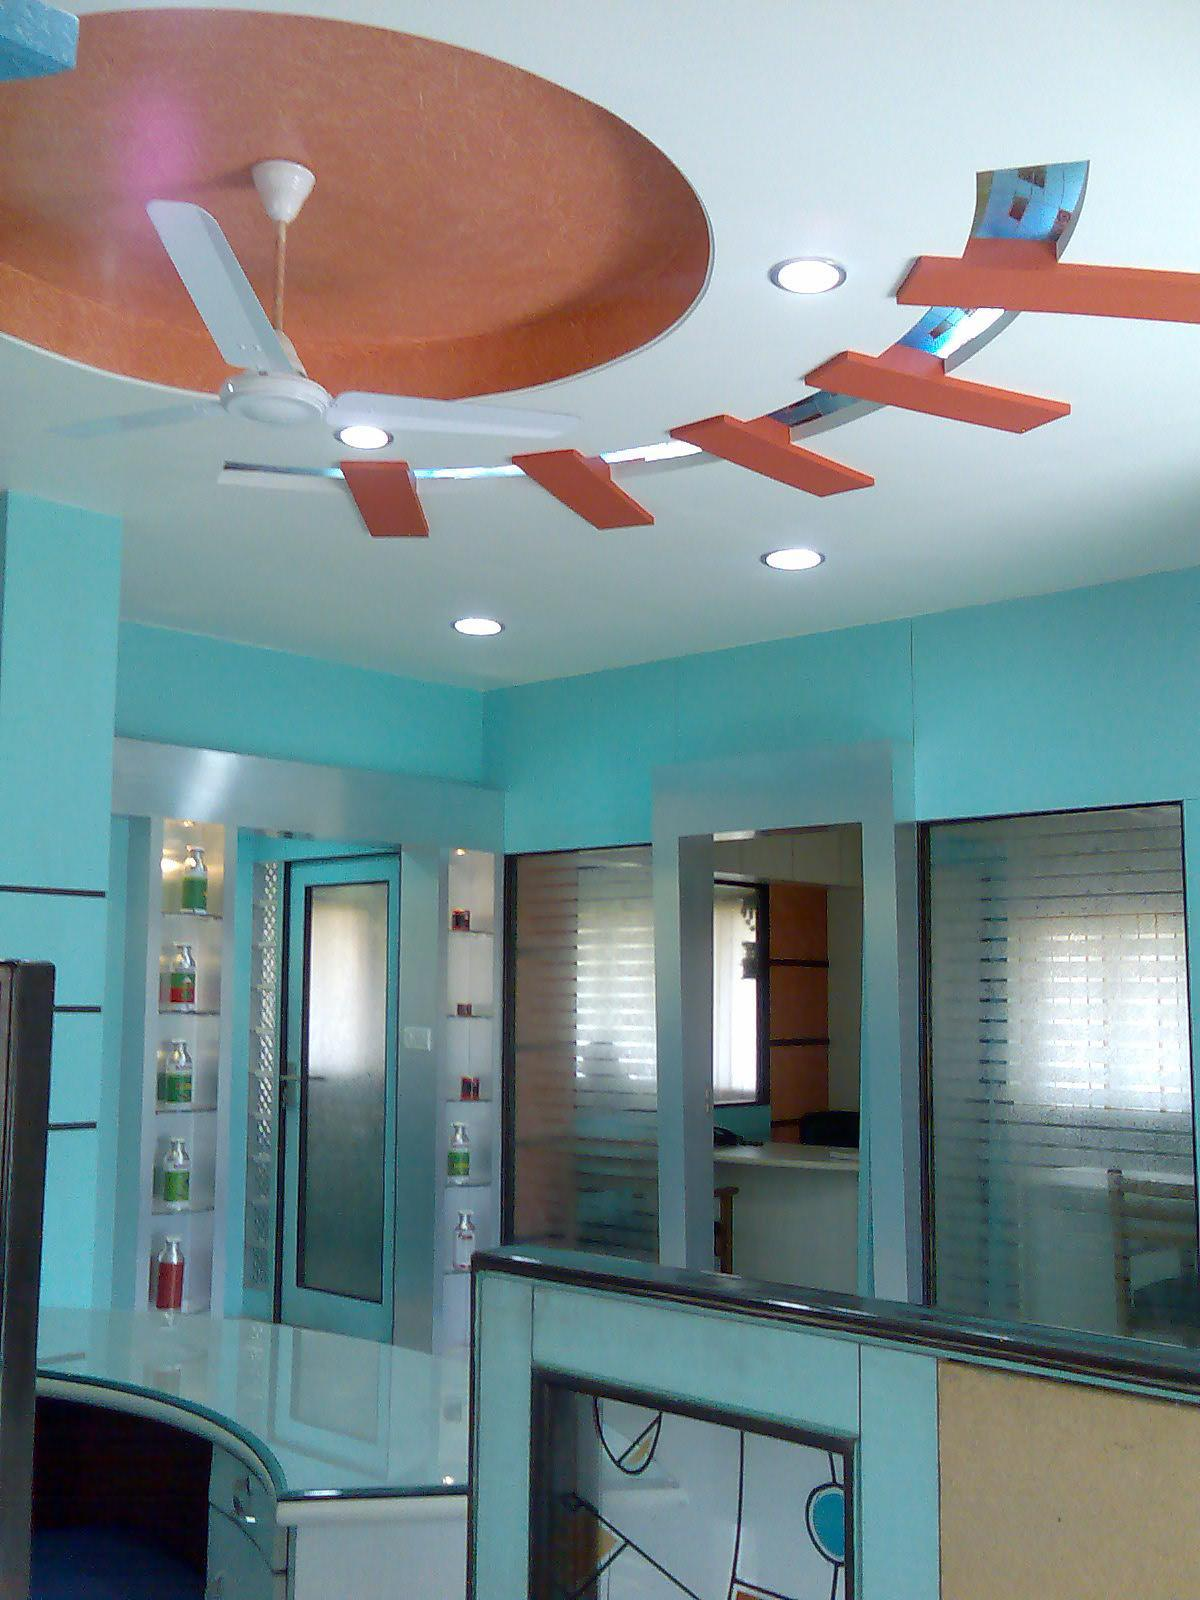 Kids Room False Ceiling Design: Ceiling Design For Office Reception Place.